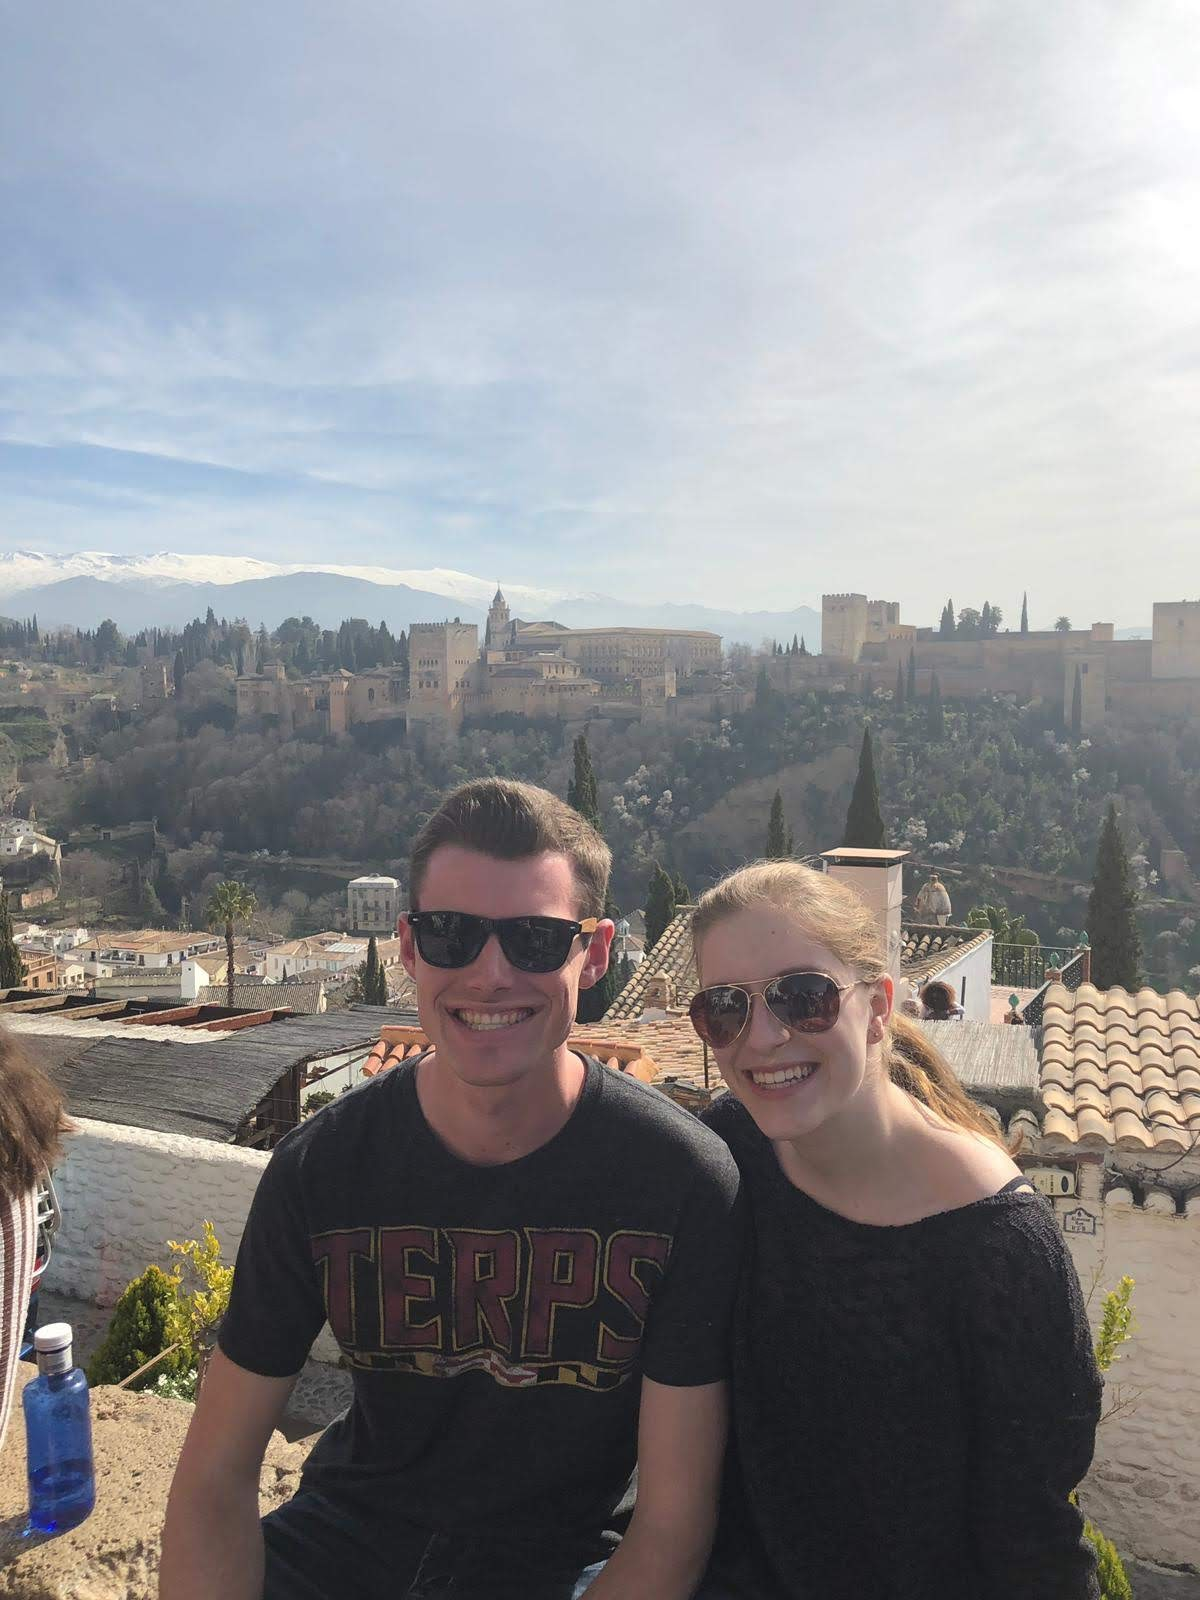 Spain - Brian Florenzo, a physiology and neurobiology major with a double degree in Spanish, and Lexi Wolfe, also a physiology and neurobiology major, both juniors, studying in Seville and seen here visiting La Alhambra in Grenada.